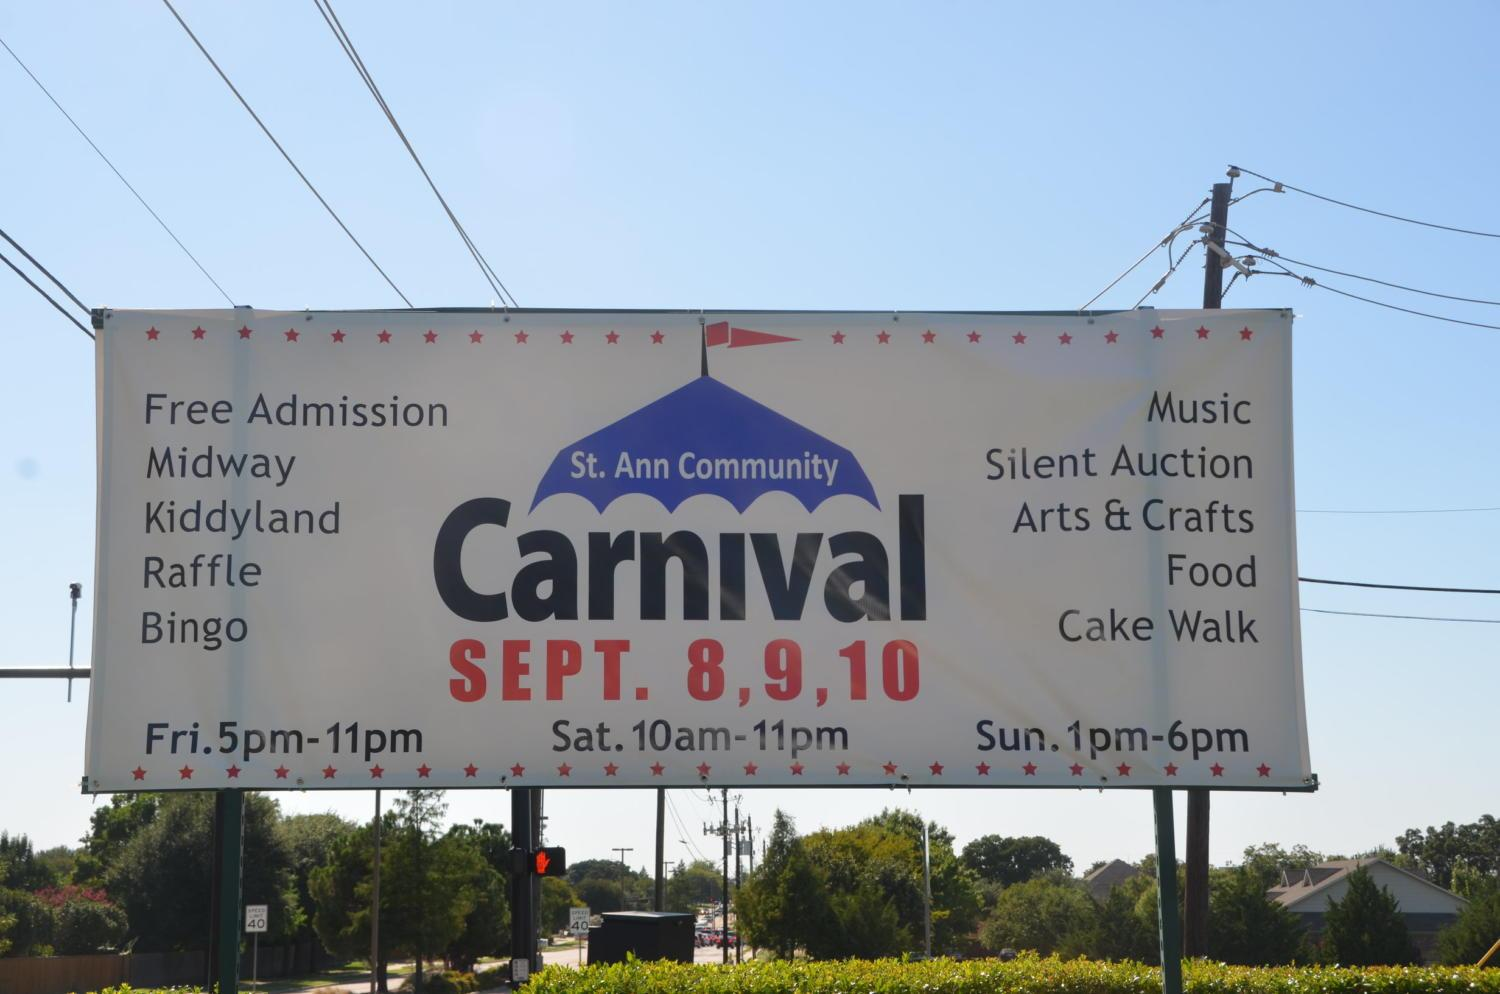 The St. Ann Community Carnival is taking place outside of the church from Friday through Sunday. From games and crafts to rides and music, the event is welcome to people of all ages.